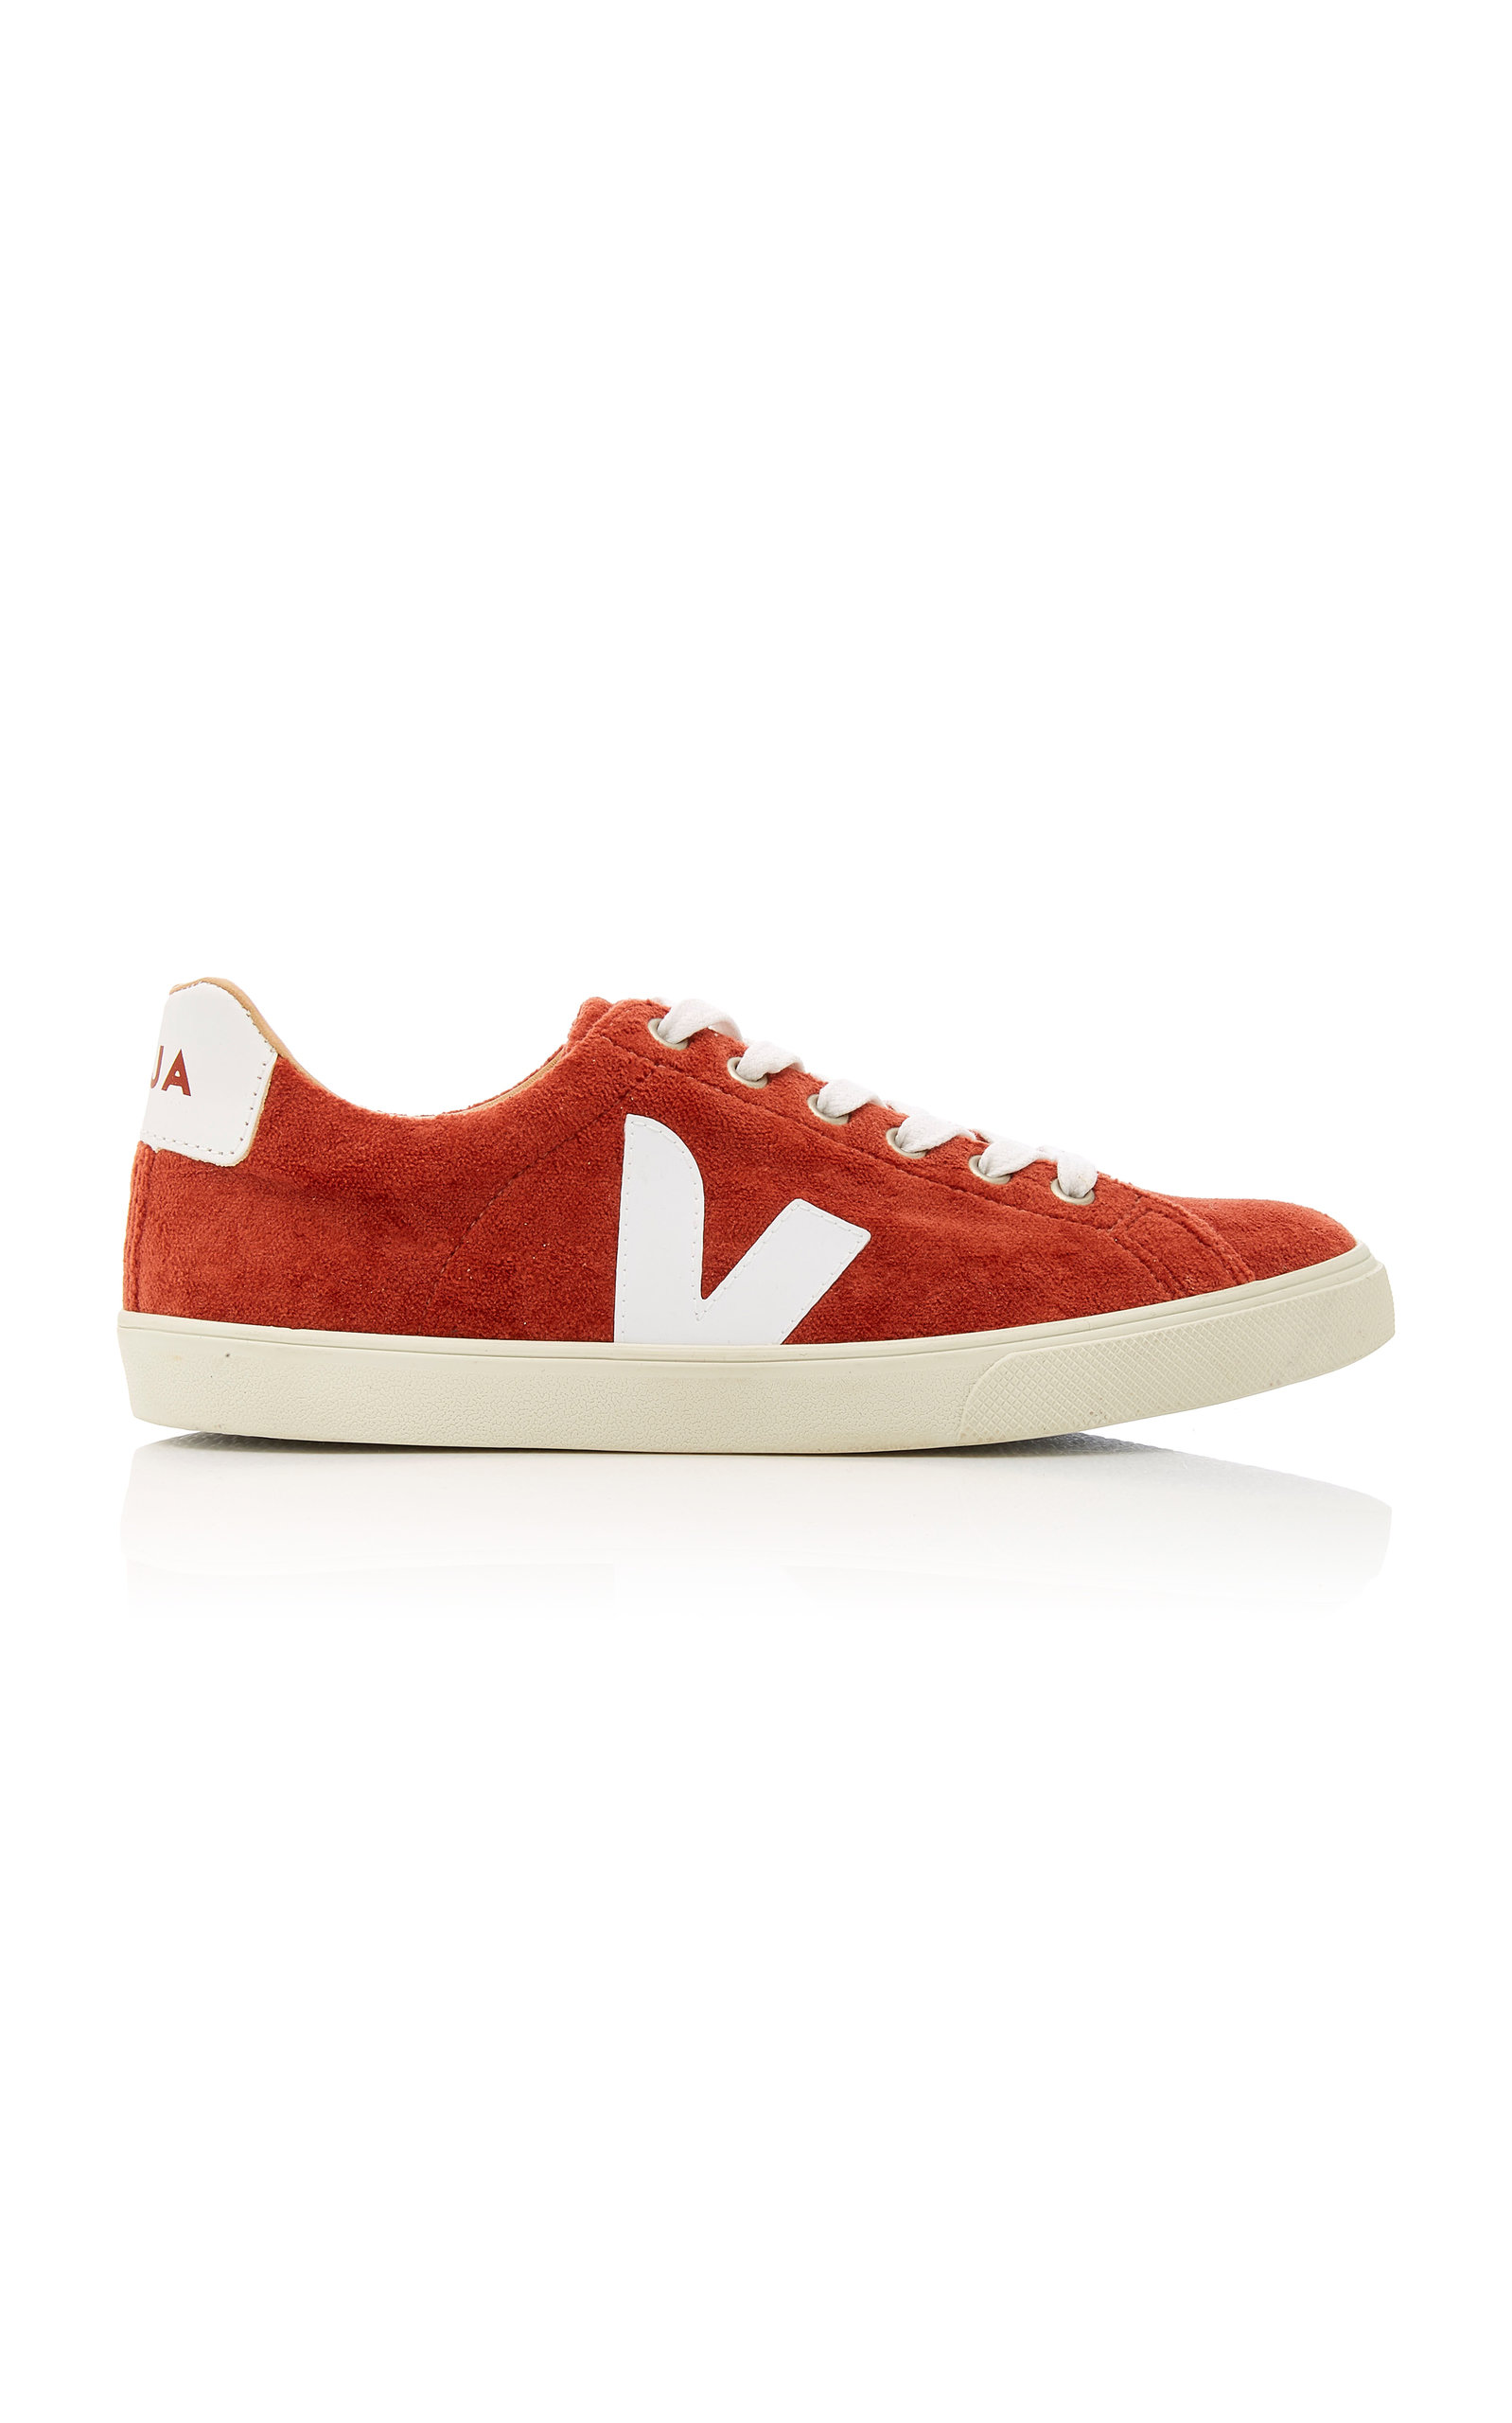 VEJA ESPLAR LEATHER-TRIMMED SUEDE SNEAKERS